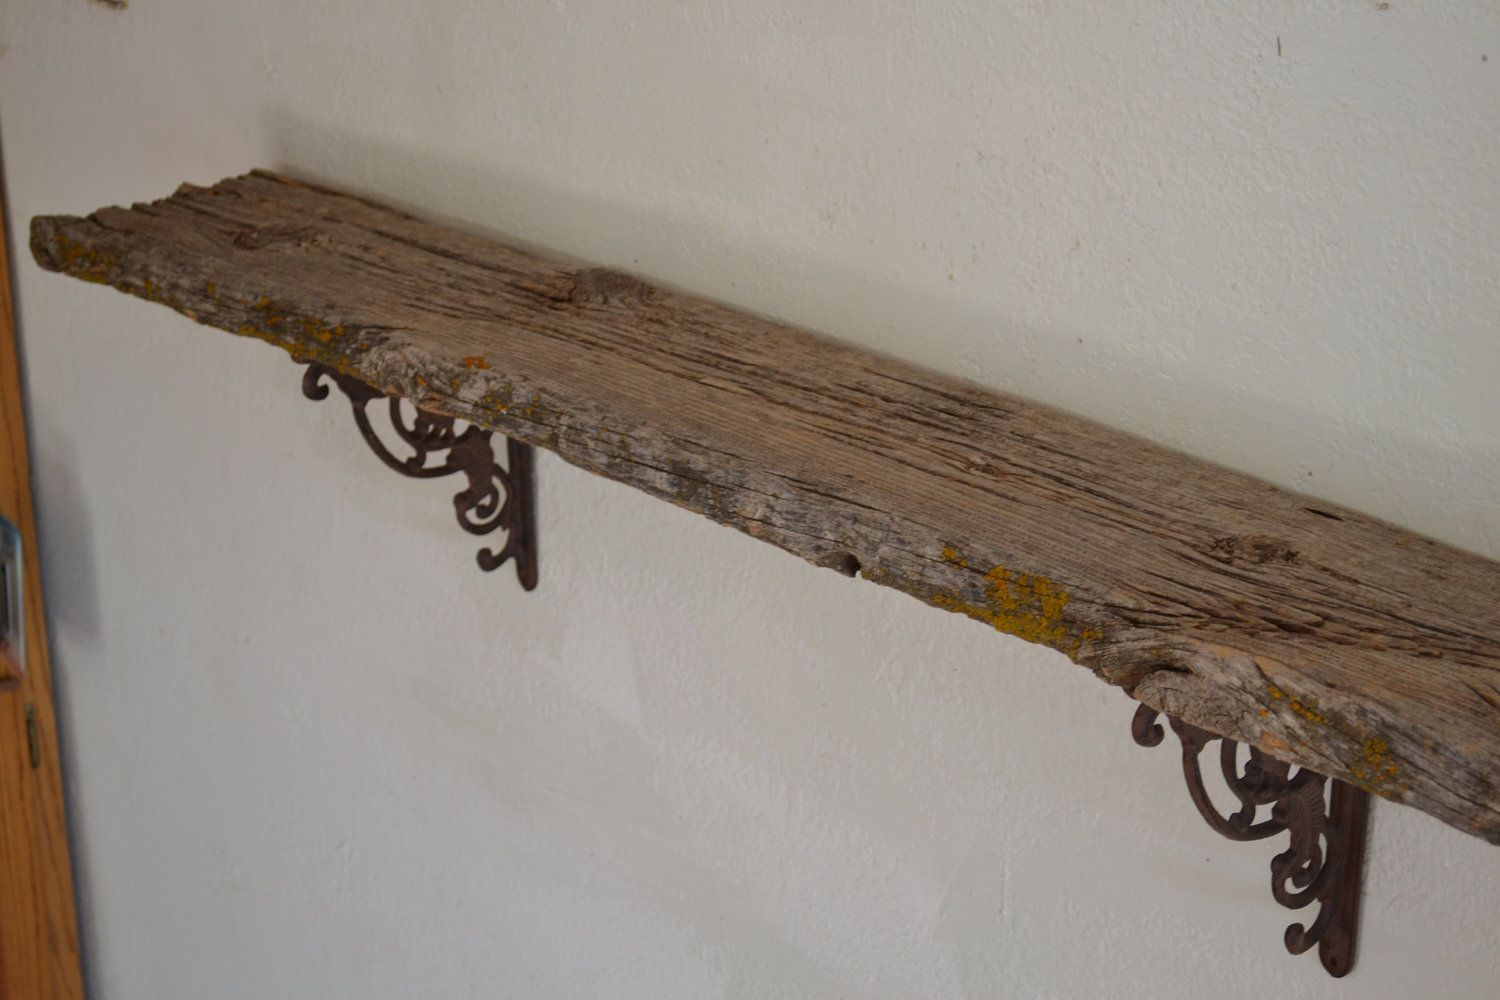 Riverside road weathered barn wood wall shelf simple and unique 53 riverside road weathered barn wood wall shelf simple and unique 53 inches wide 8 inches deep extremely rustic wall decor 11 inches tall amipublicfo Choice Image